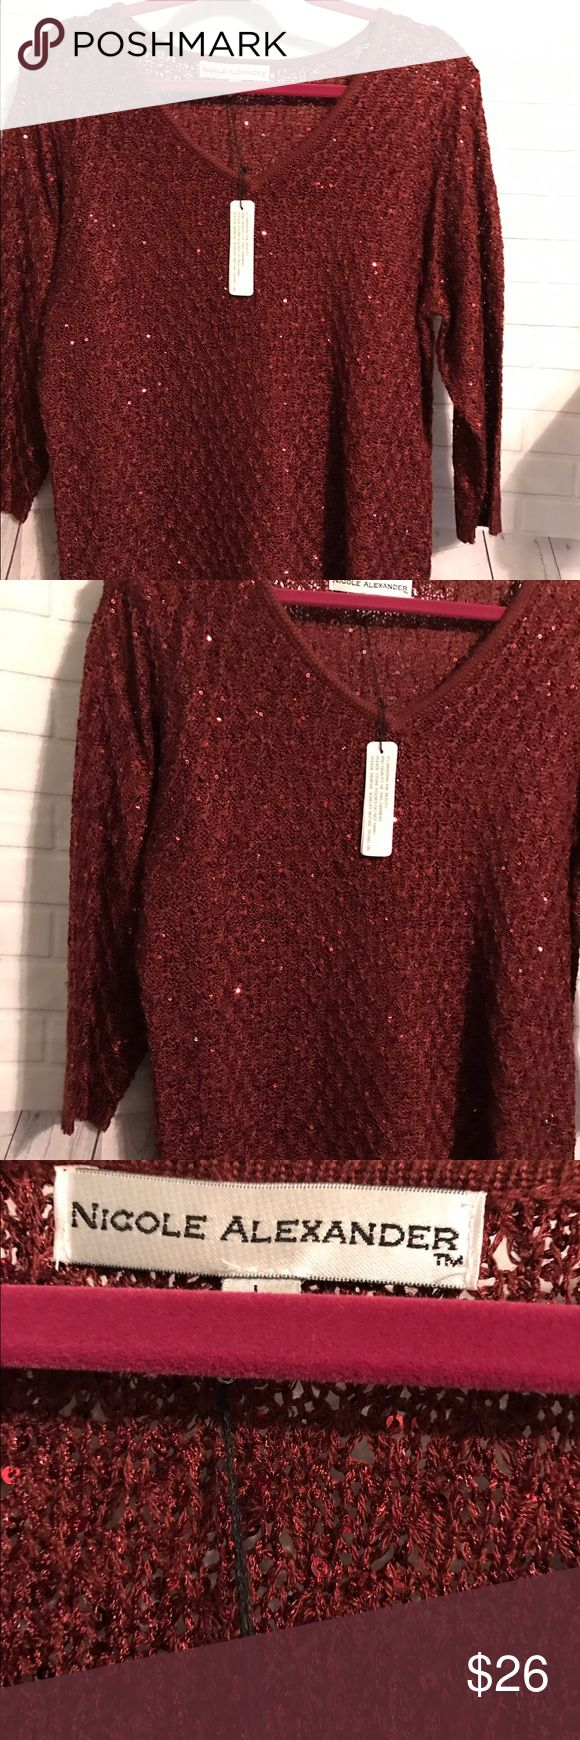 New Tunic 3/4 Sleeve light sweater Very cute sequins Sweater, this is burgundy color nicole alexander Sweaters Crew & Scoop Necks